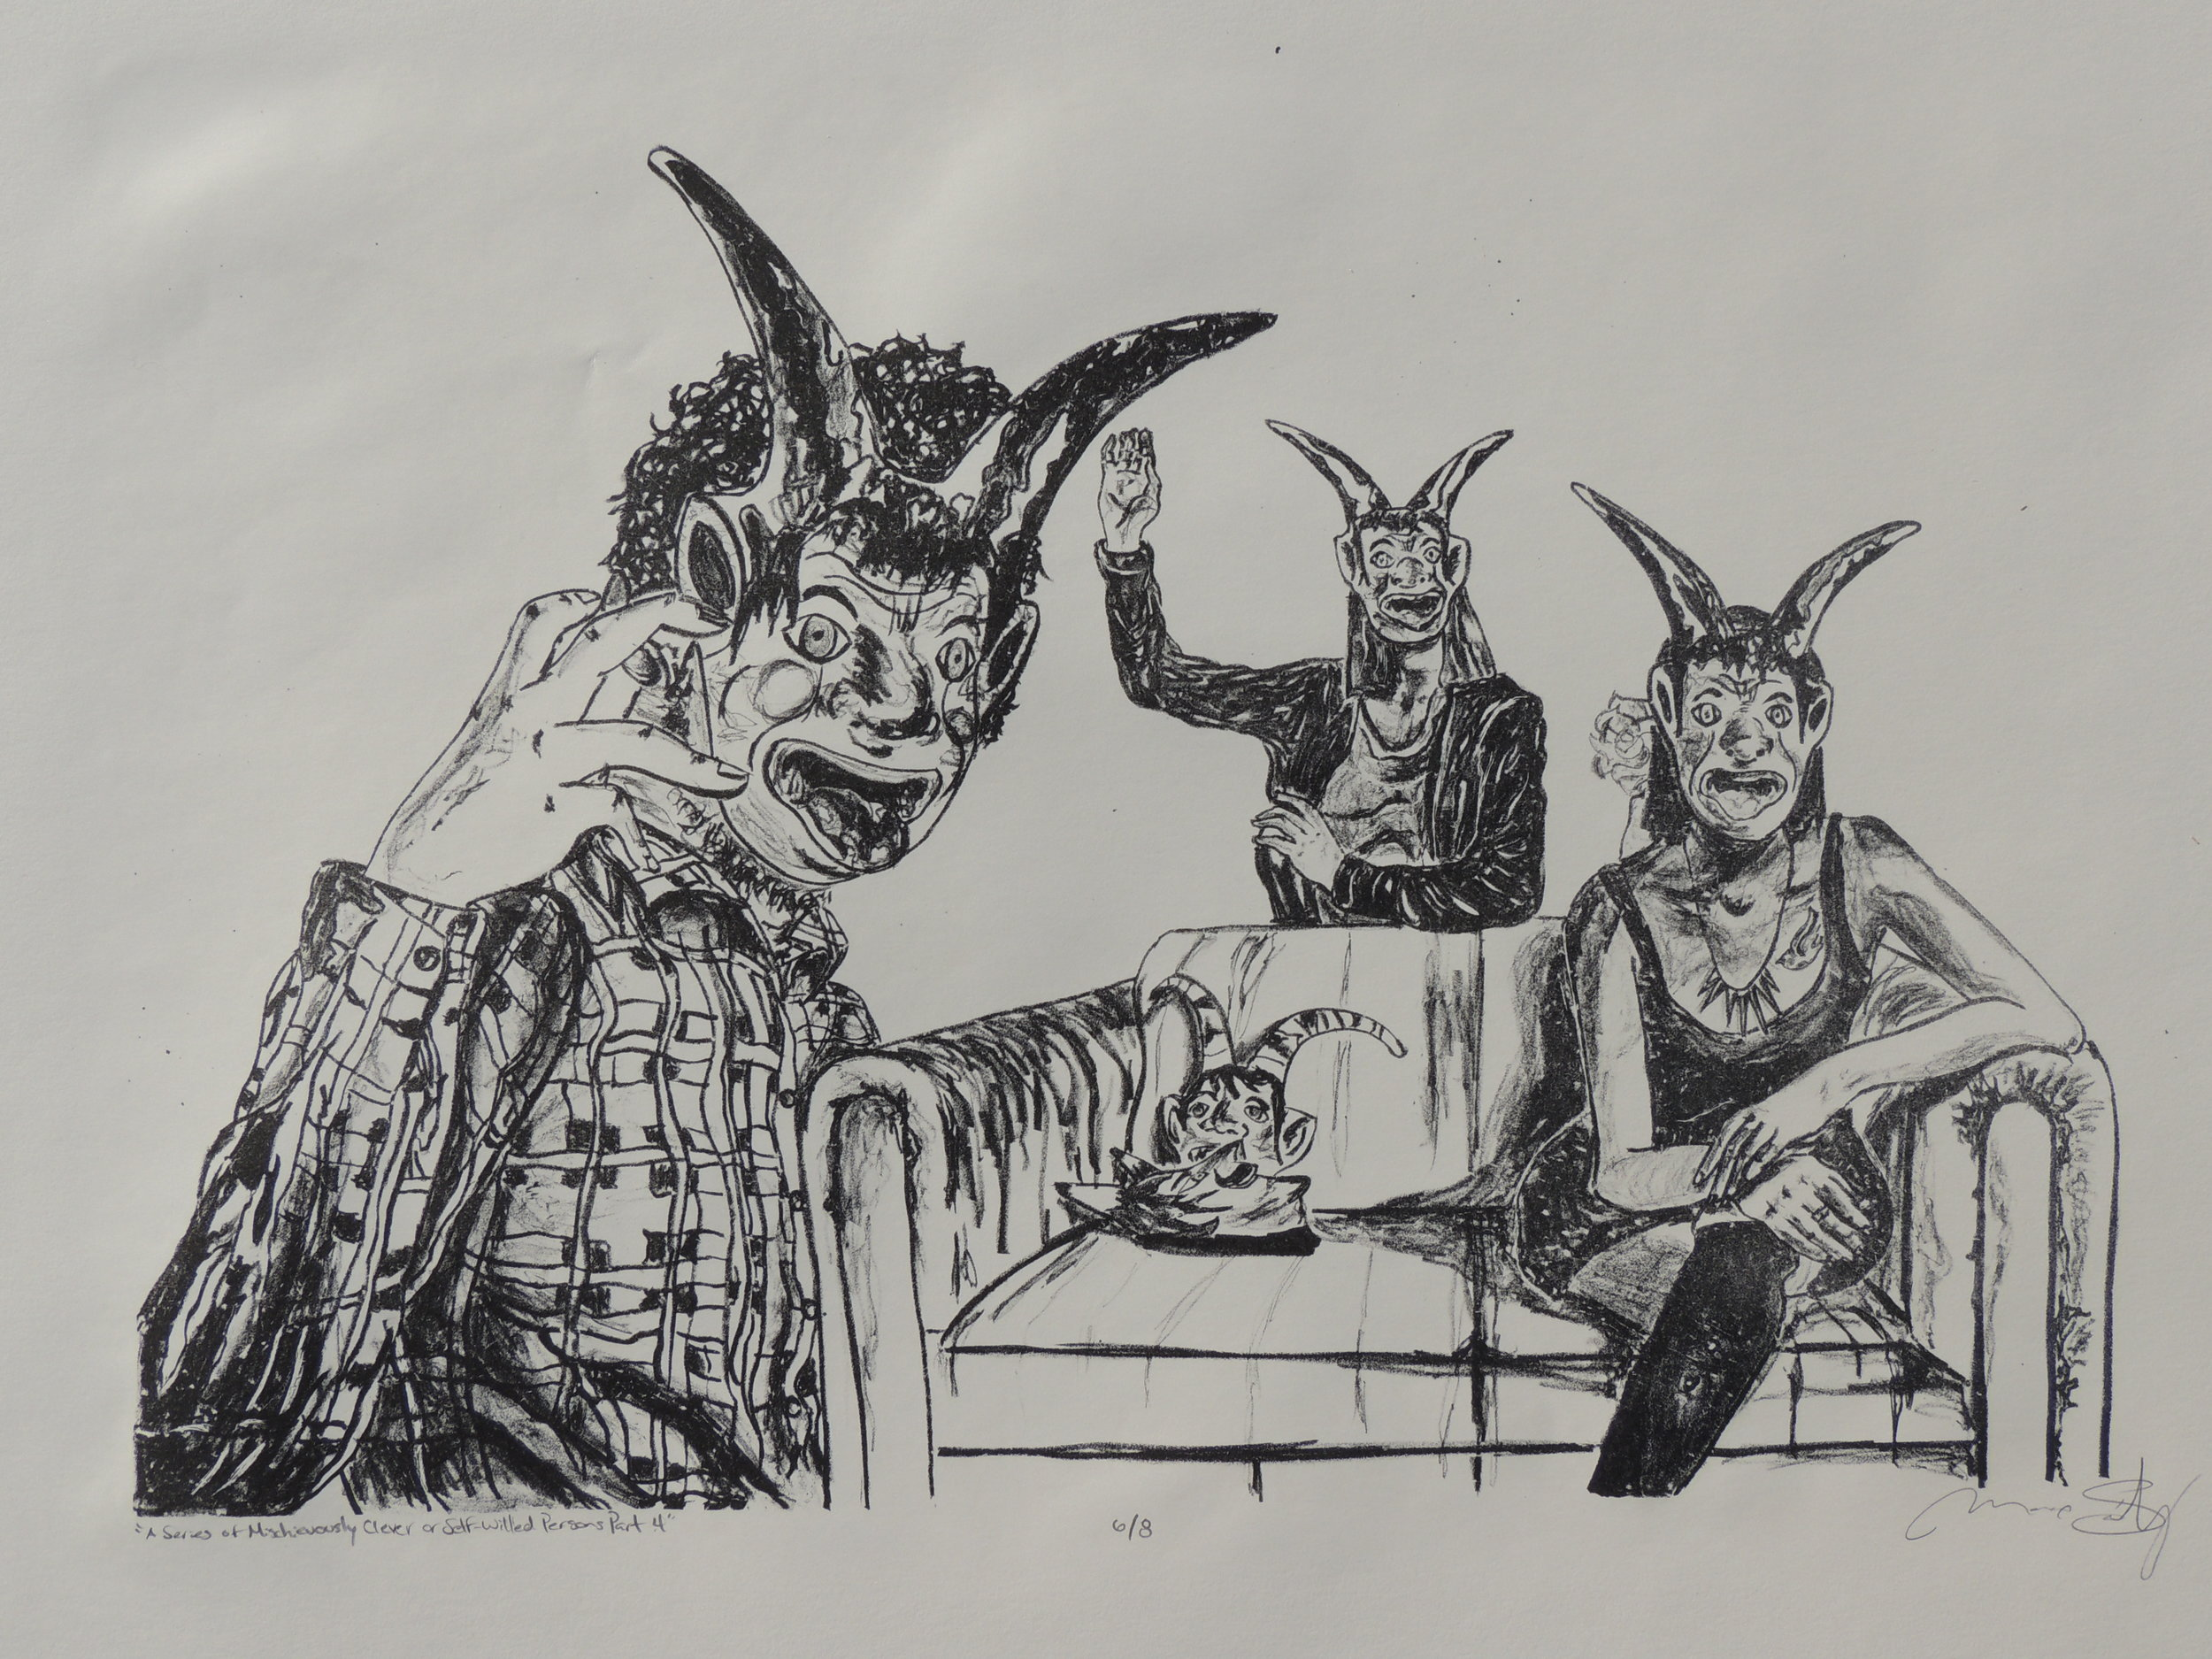 From the  Series of Mischevious and Self-Willed Persons,  lithograph, 22 x 30 inches